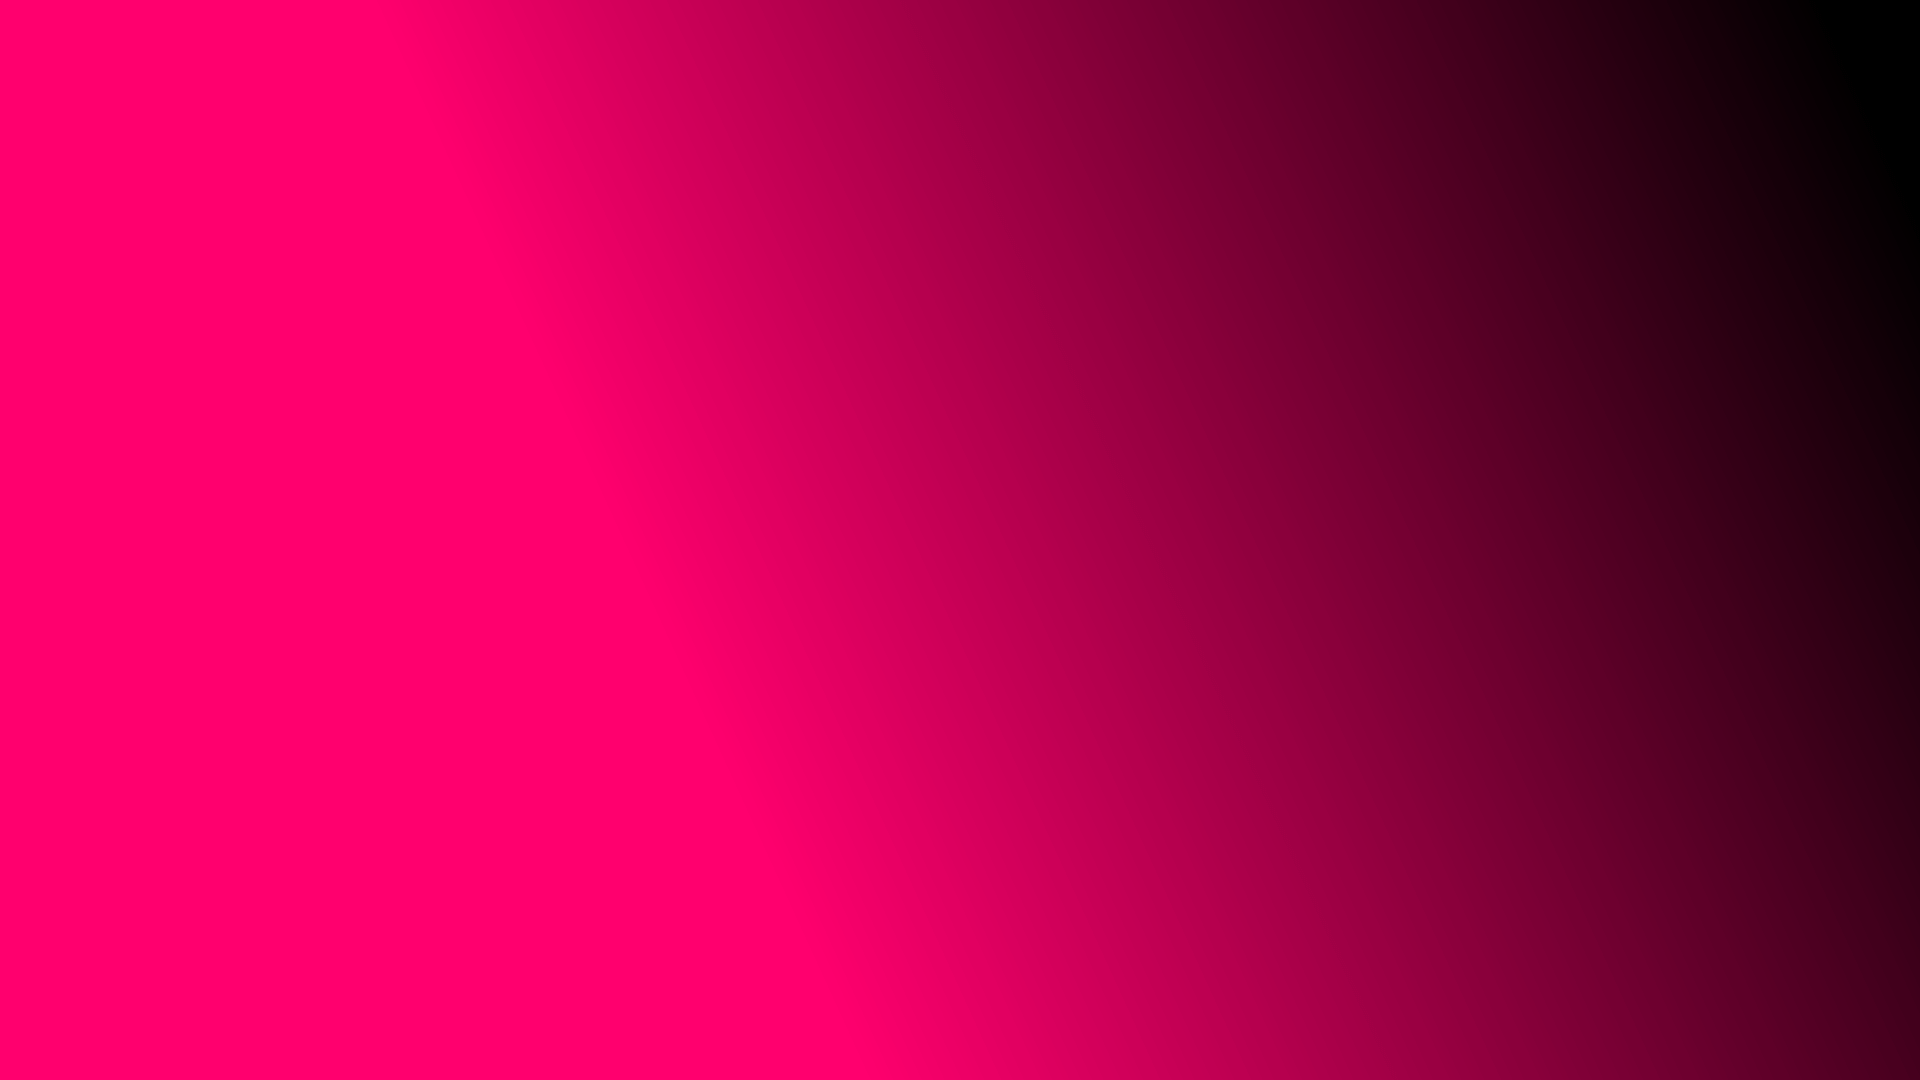 Free Pink Wallpapers Wallpaper Cave